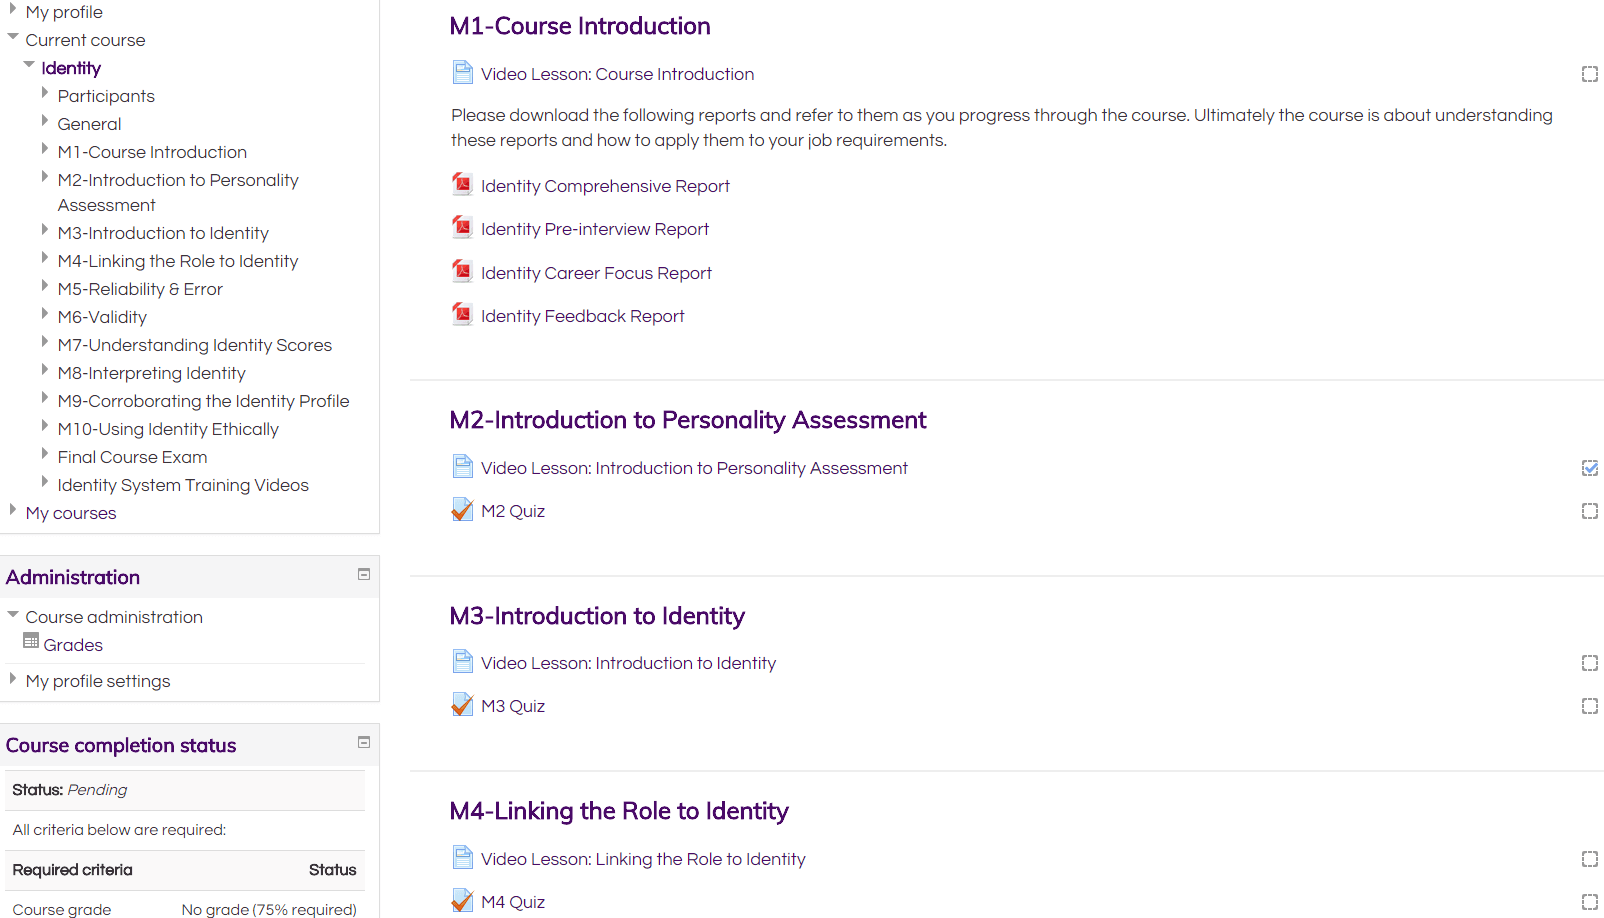 Identity Online Personality Assessment User Course